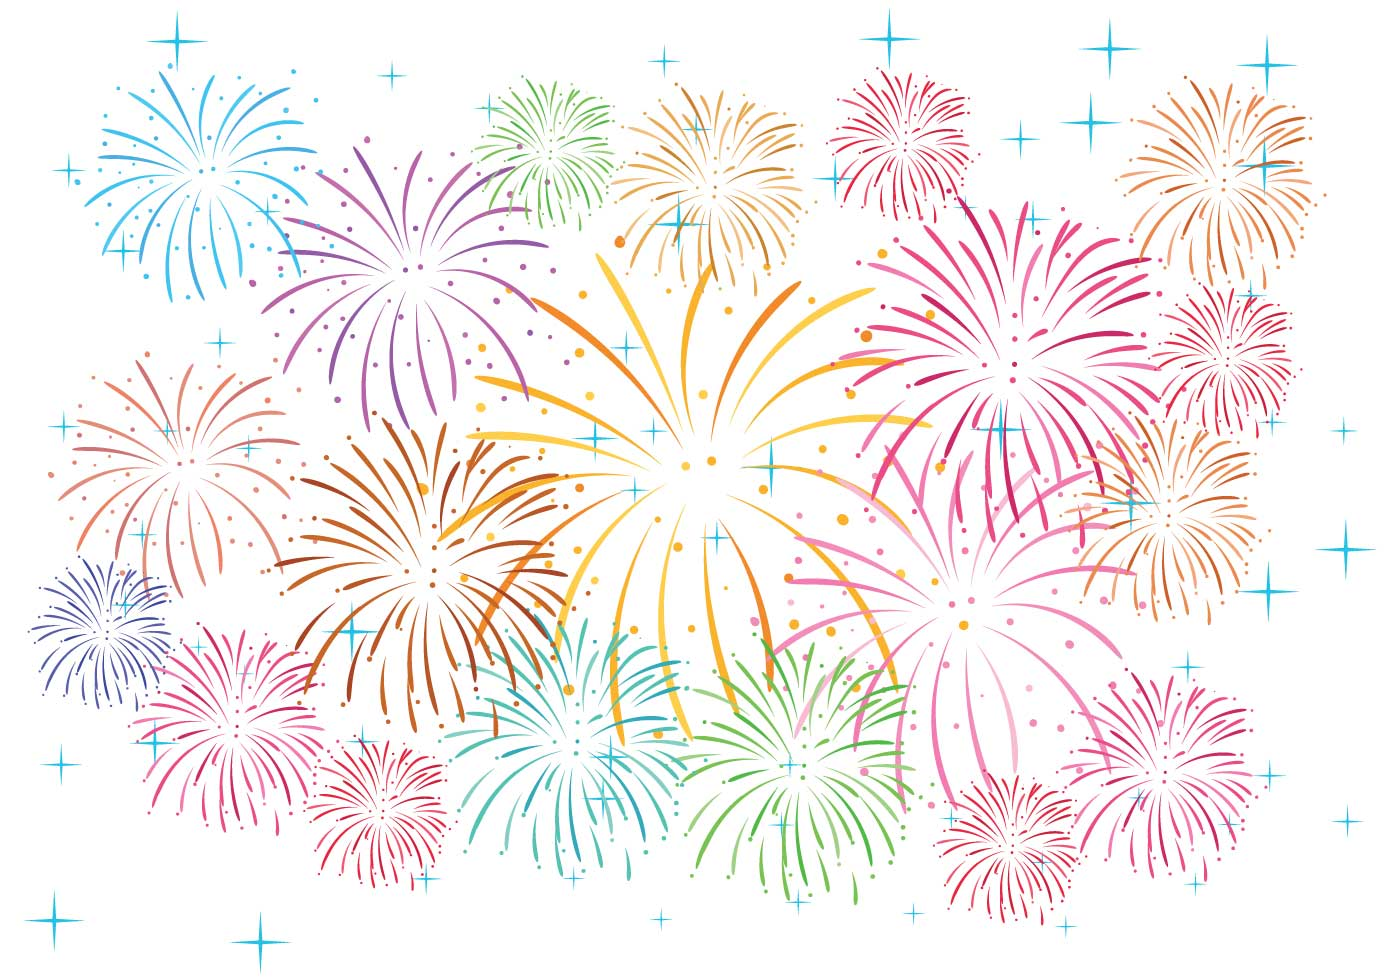 Fireworks on White Background Vector - Download Free ...